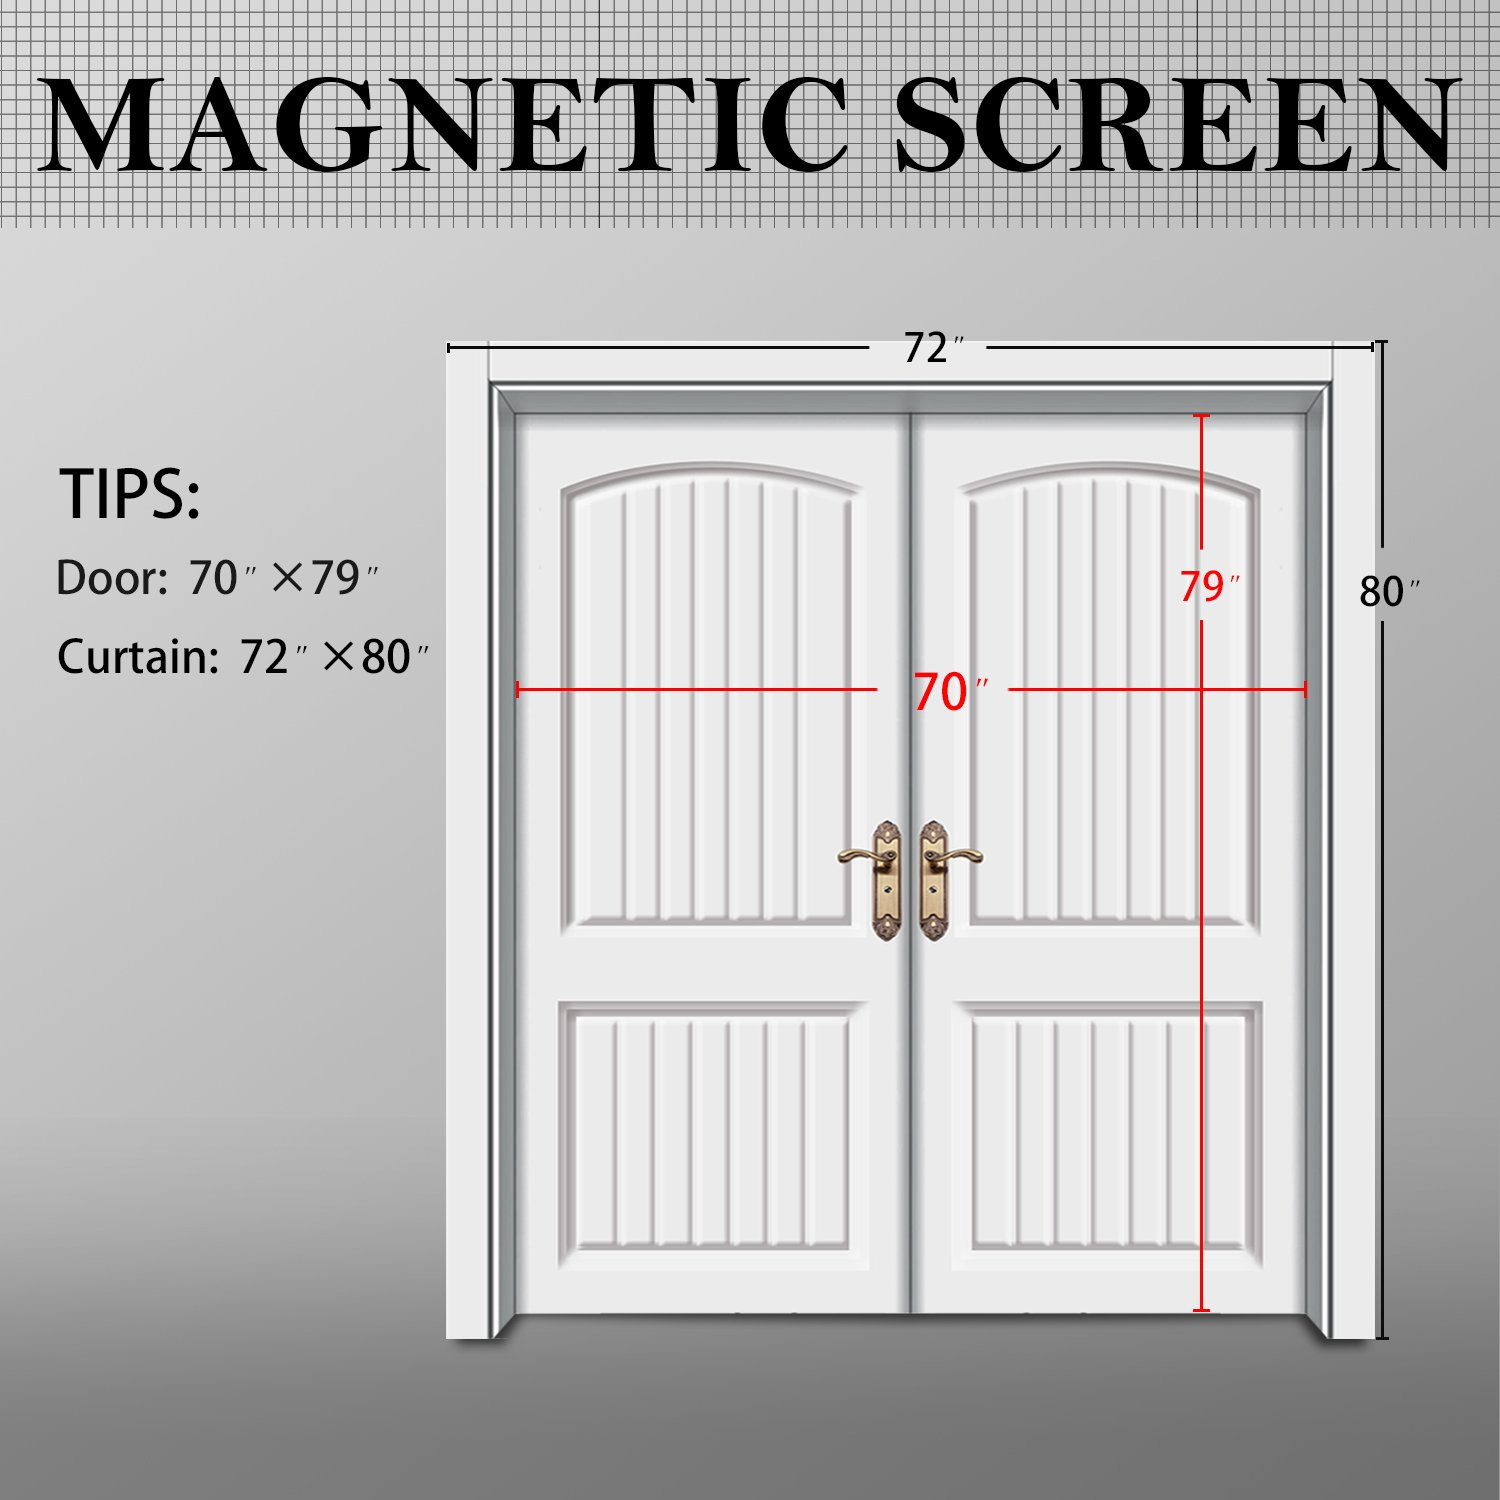 Amazon magnetic screen door wide mega french door mesh 72 x amazon magnetic screen door wide mega french door mesh 72 x 80 fit doors size up to 70w x 79h max with full frame velcro large magnet double door vtopaller Image collections